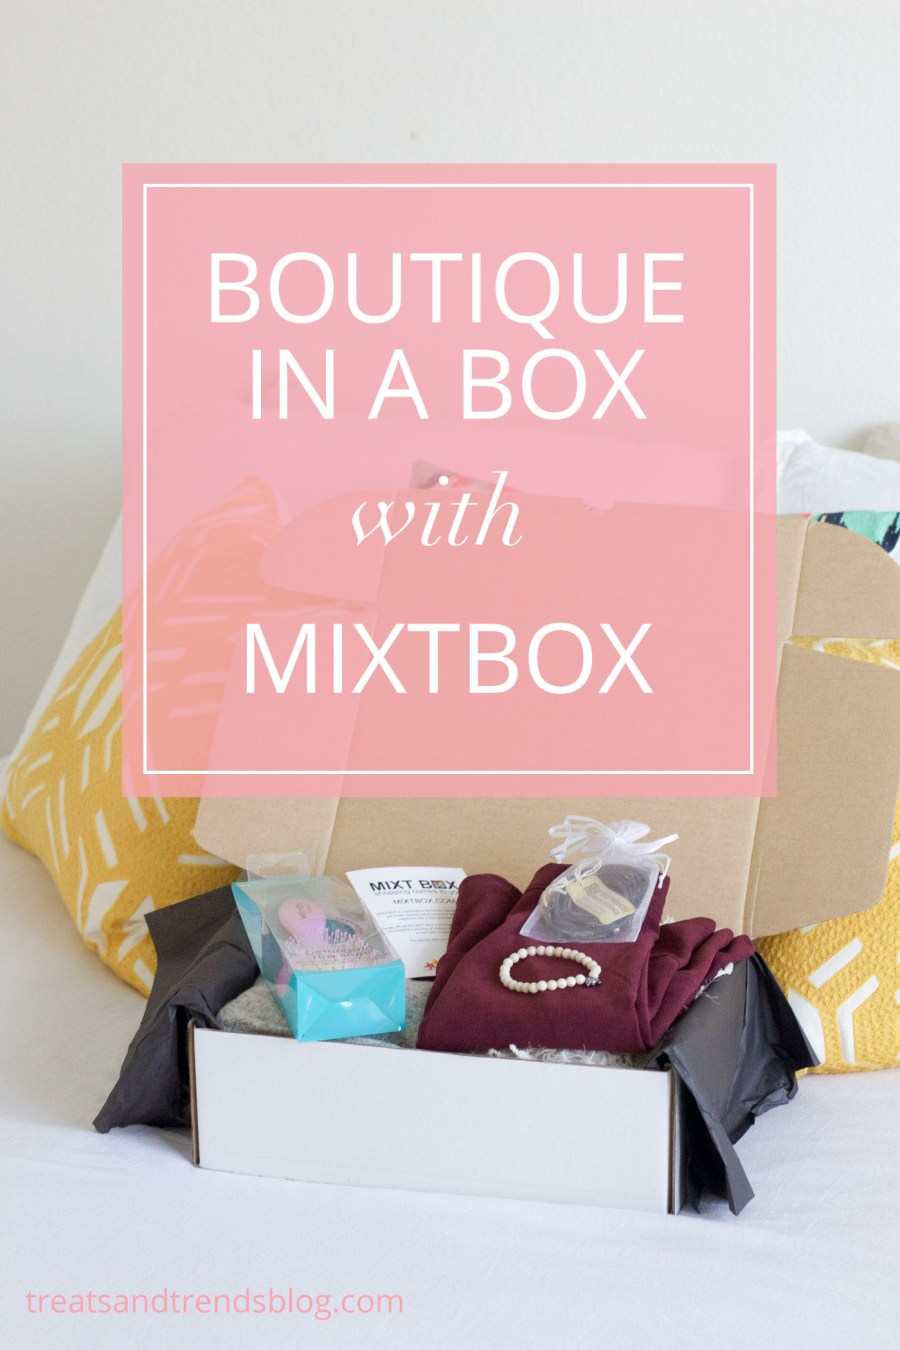 MIXTBOX, Boutique in a box, fashion box service, fashion blog, Treats and Trends